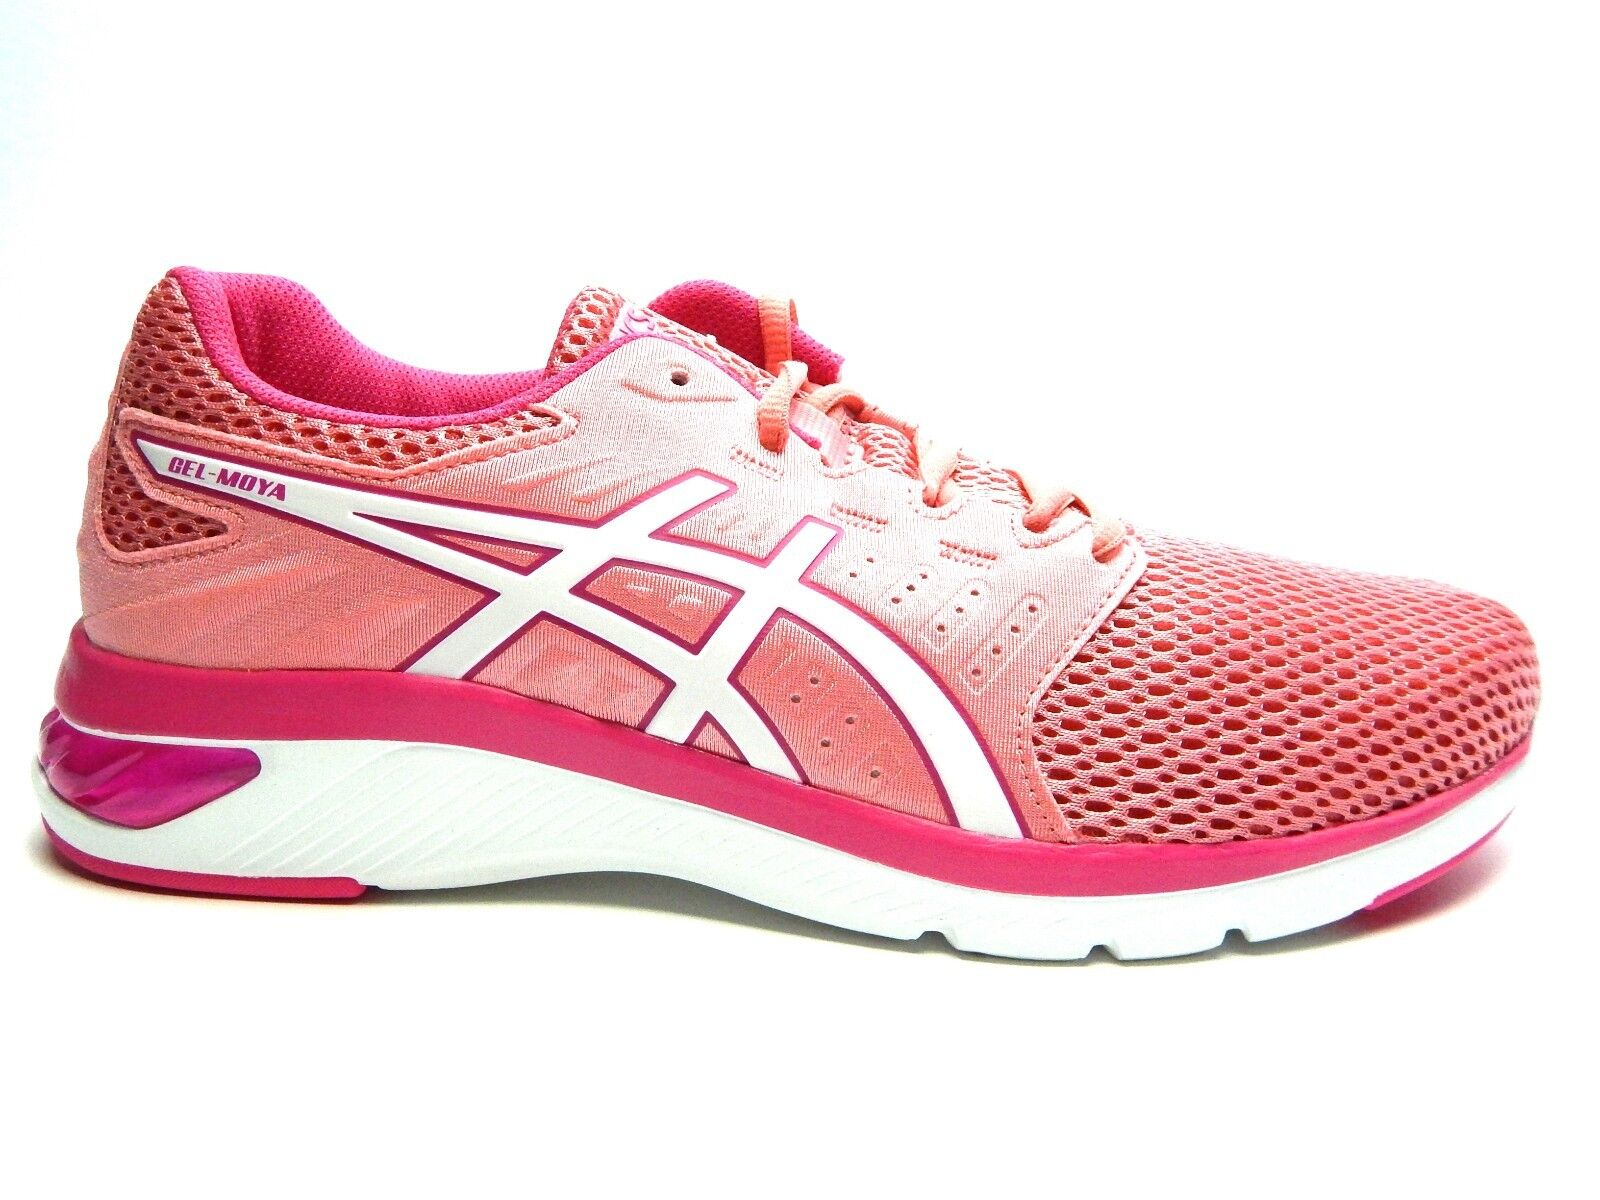 cheap for discount 08af2 a4daa ASICS GEL Moya t891n 700 Peach Peach Peach Petal Blanco Mujer Zapatos SIZE  6.5 a 10